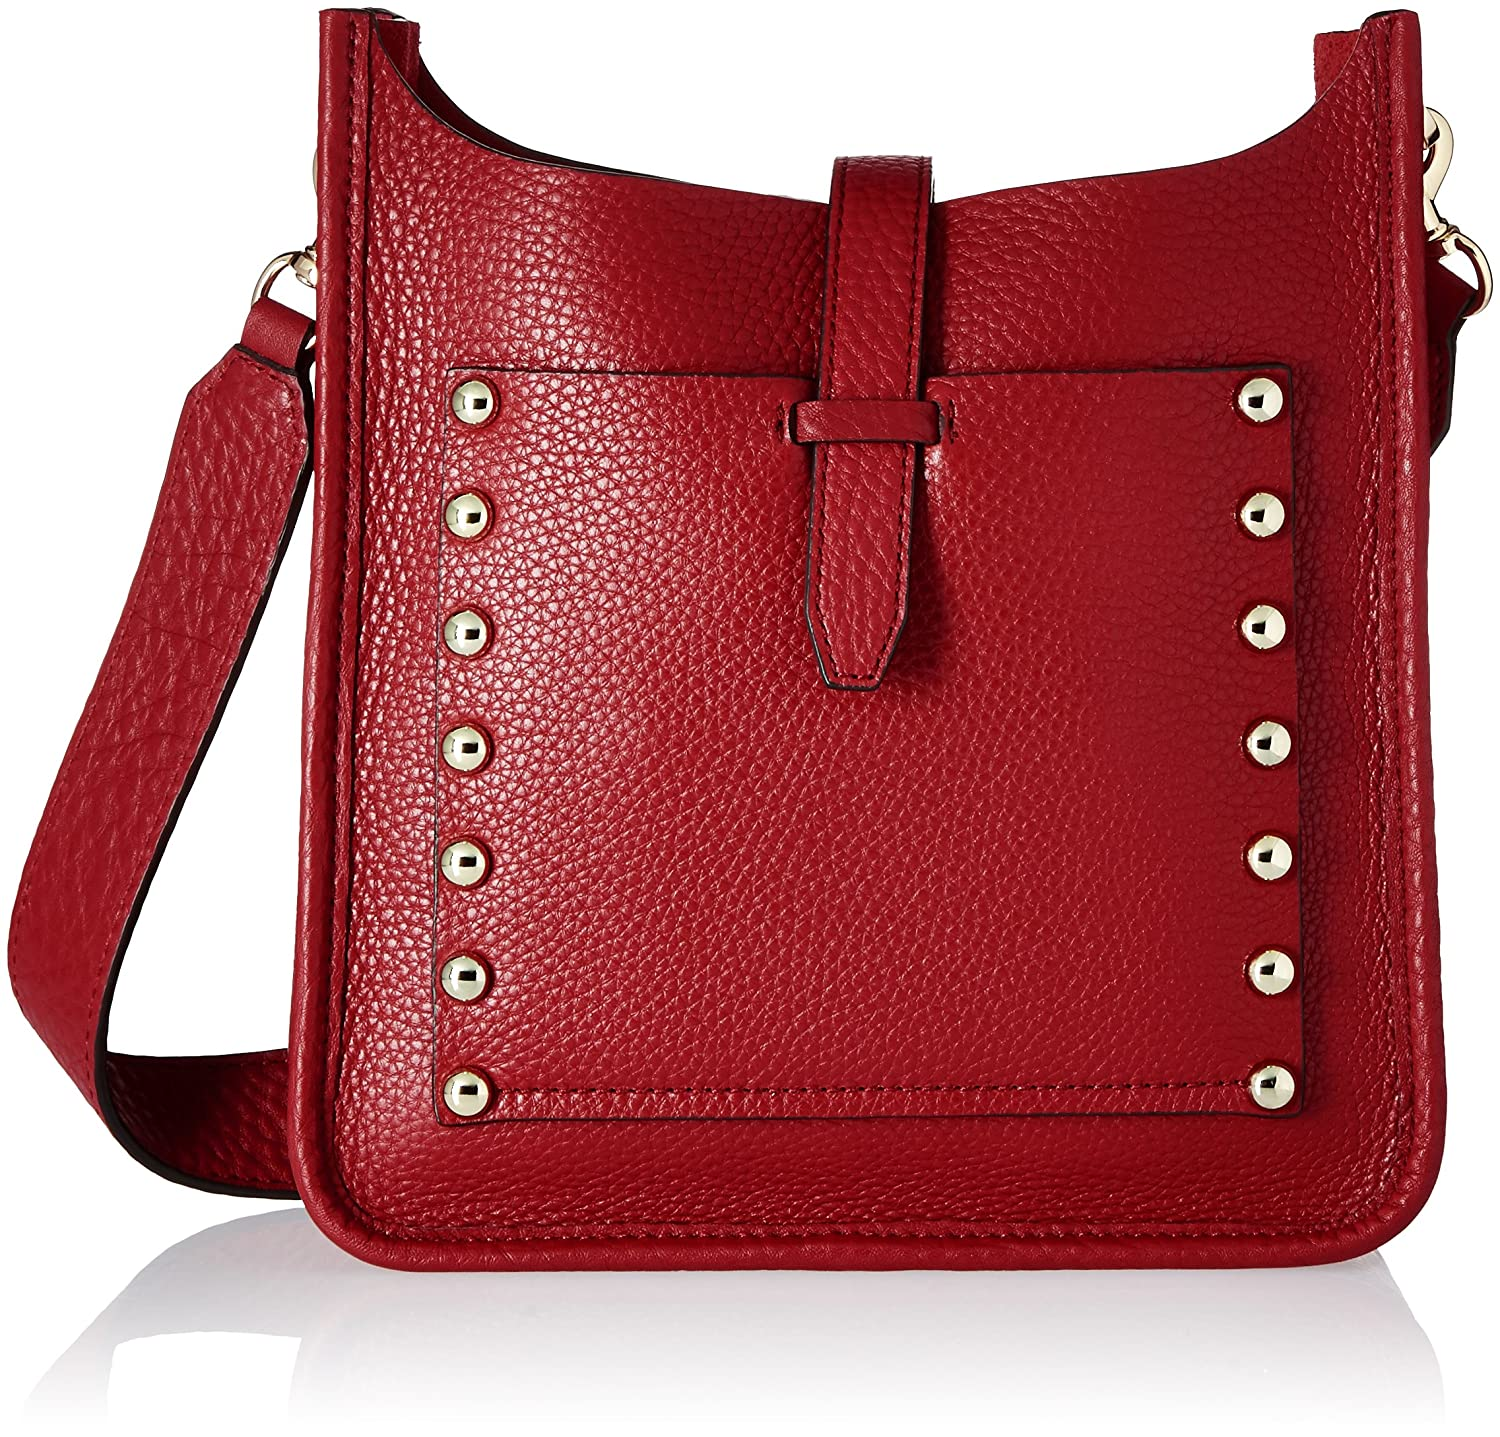 Rebecca Minkoff Small Unlined Feed Cross-Body Bag Deep Red HR26IULX92